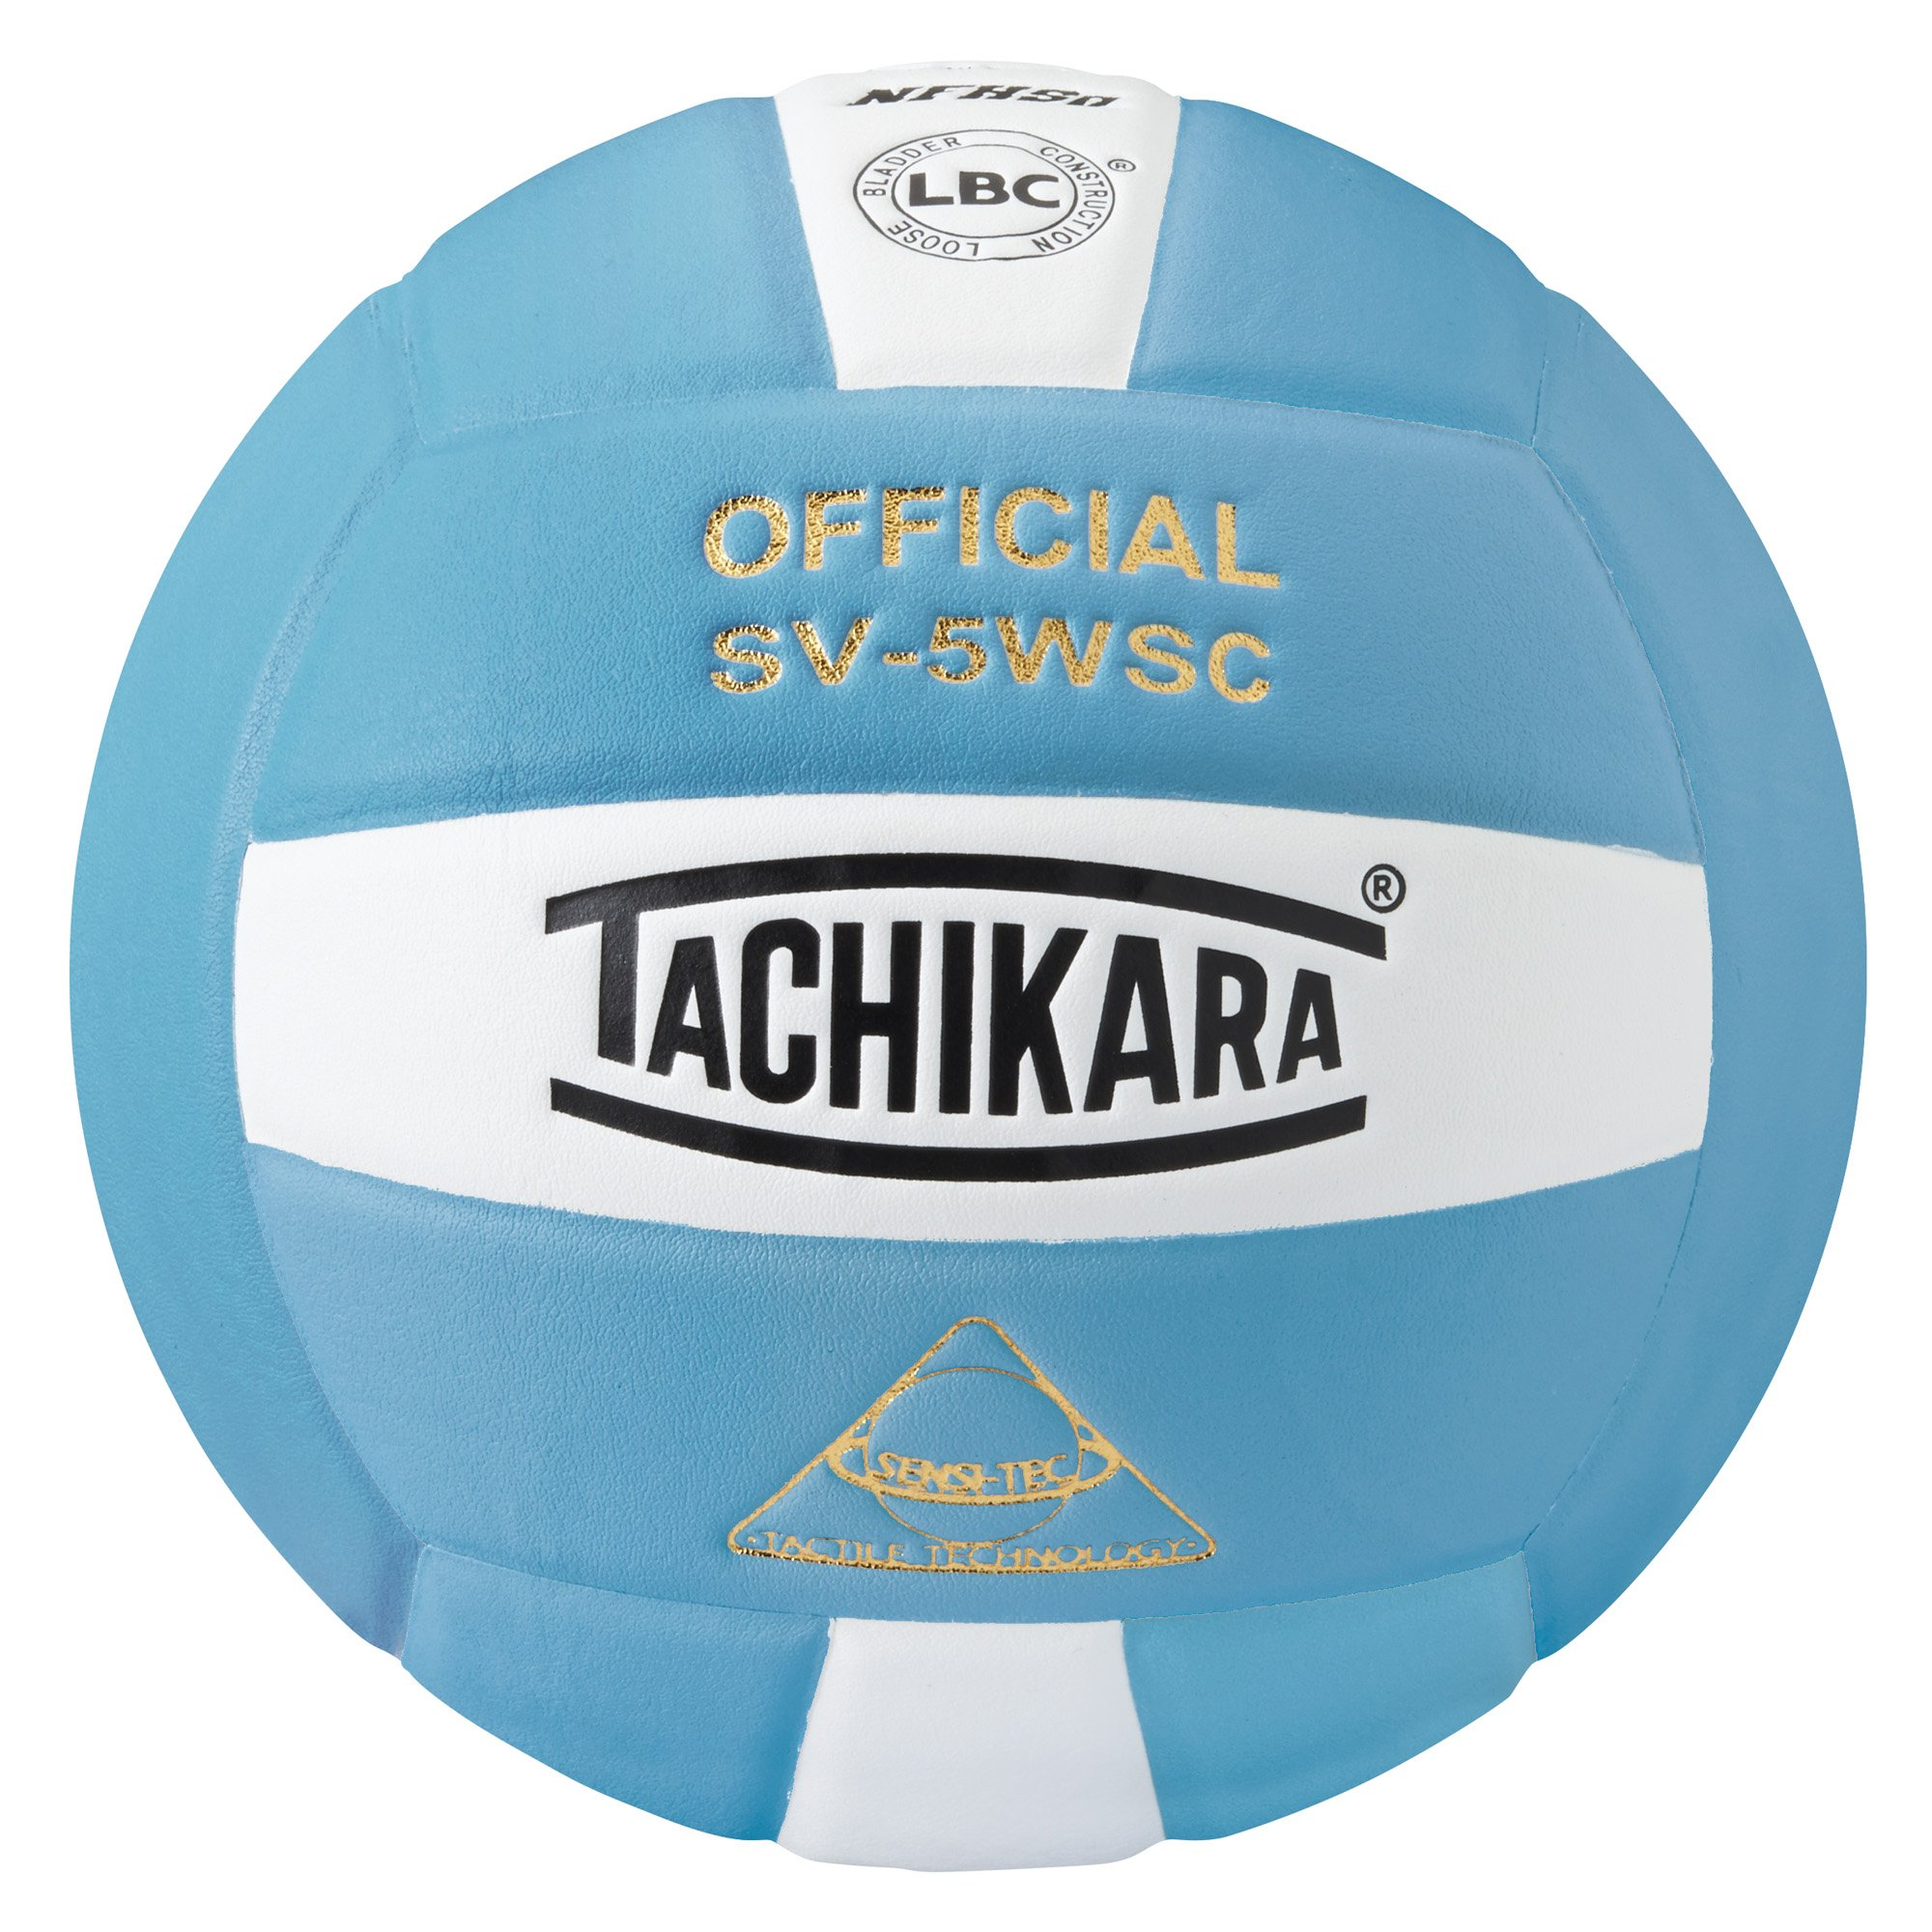 Tachikara Sensi-Tec Composite Volleyball, Powder Blue/White